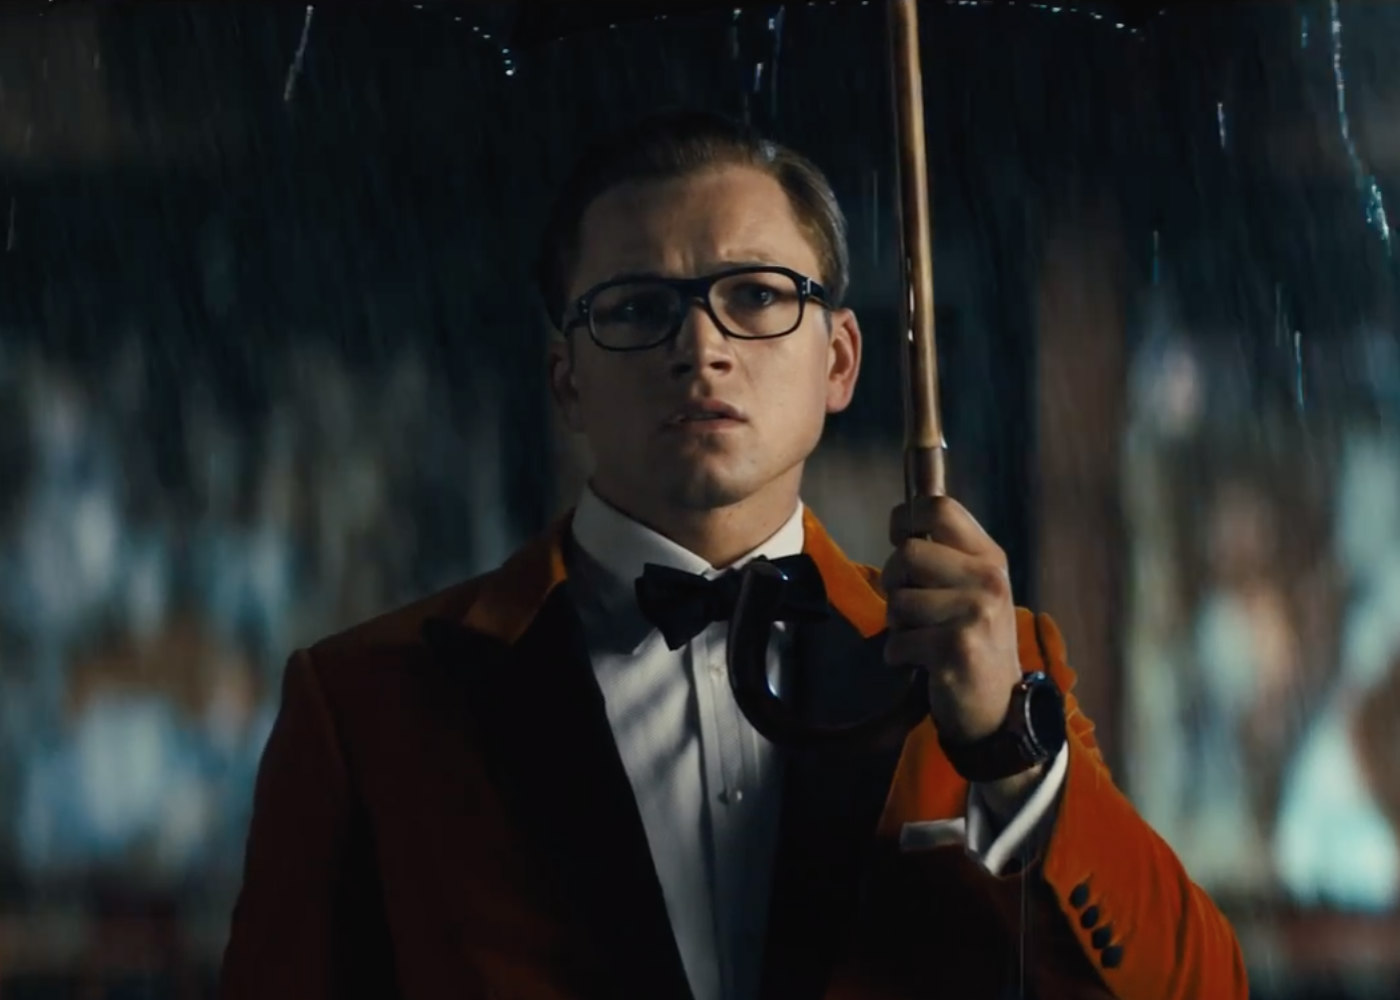 Box Office: Kingsman: The Golden Circle Shoots to the Top